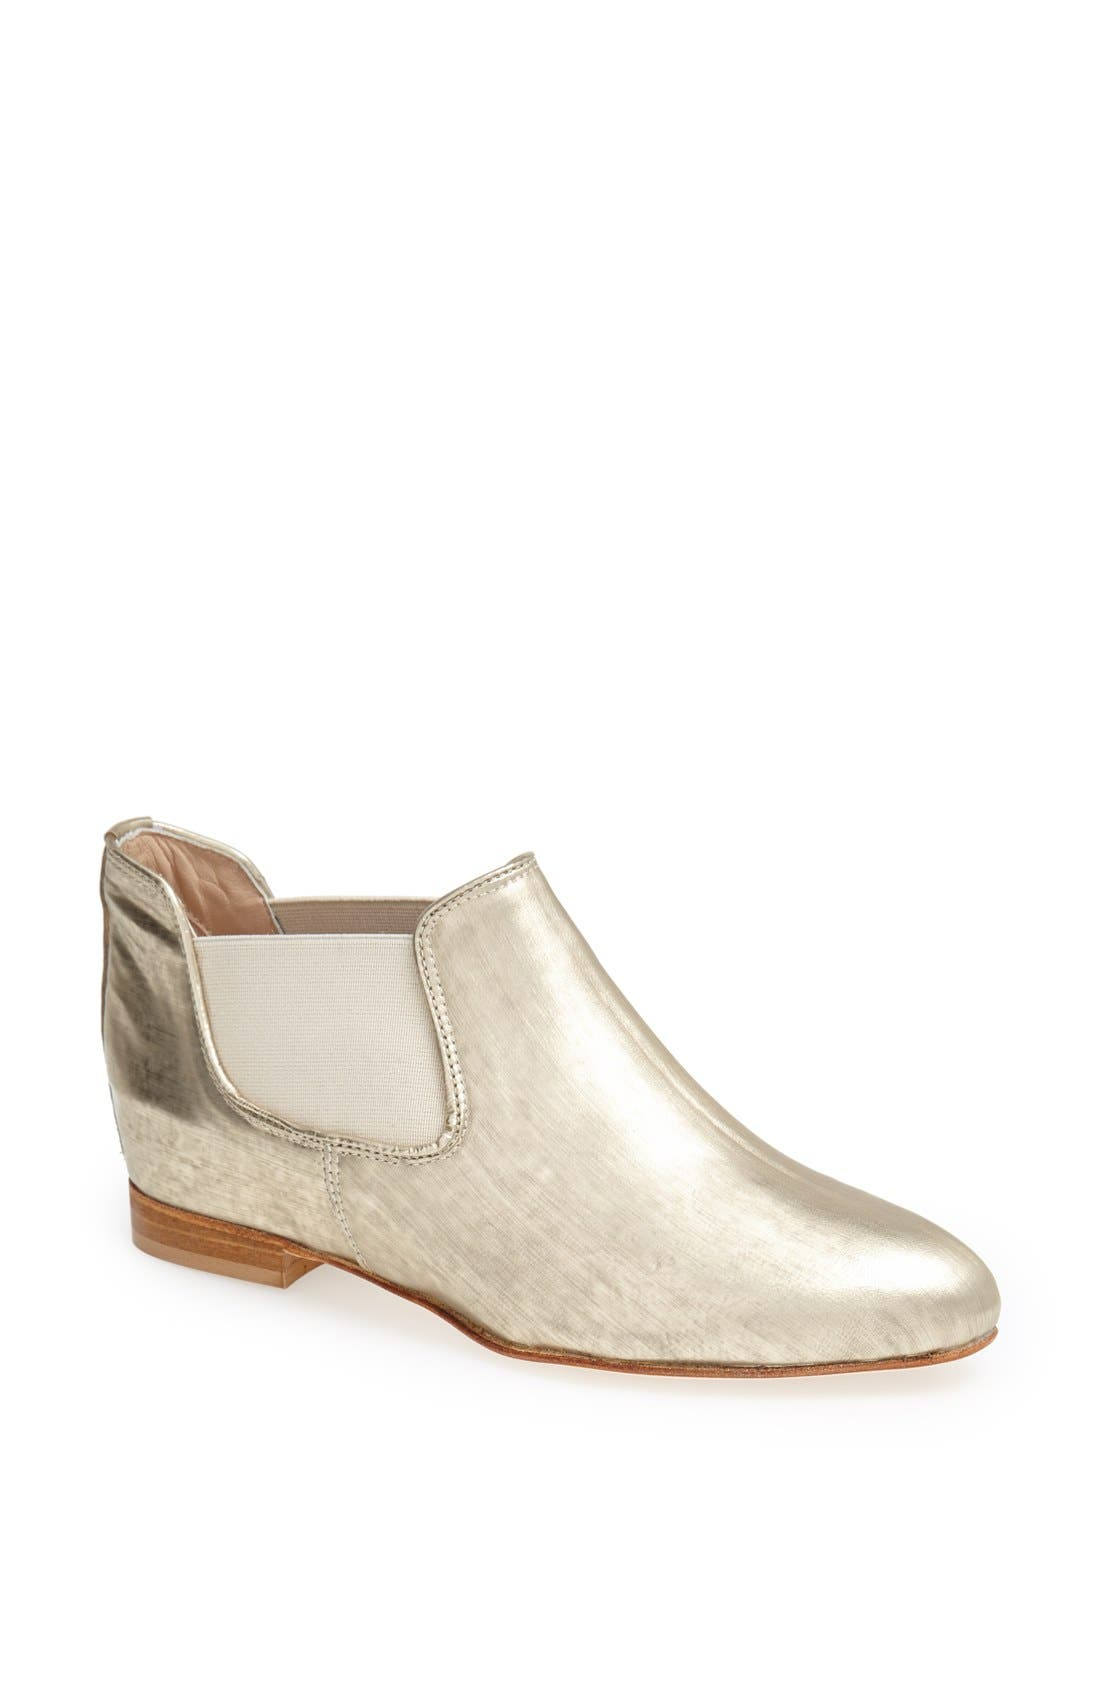 Main Image - Hego's Slip-On Ankle Boot